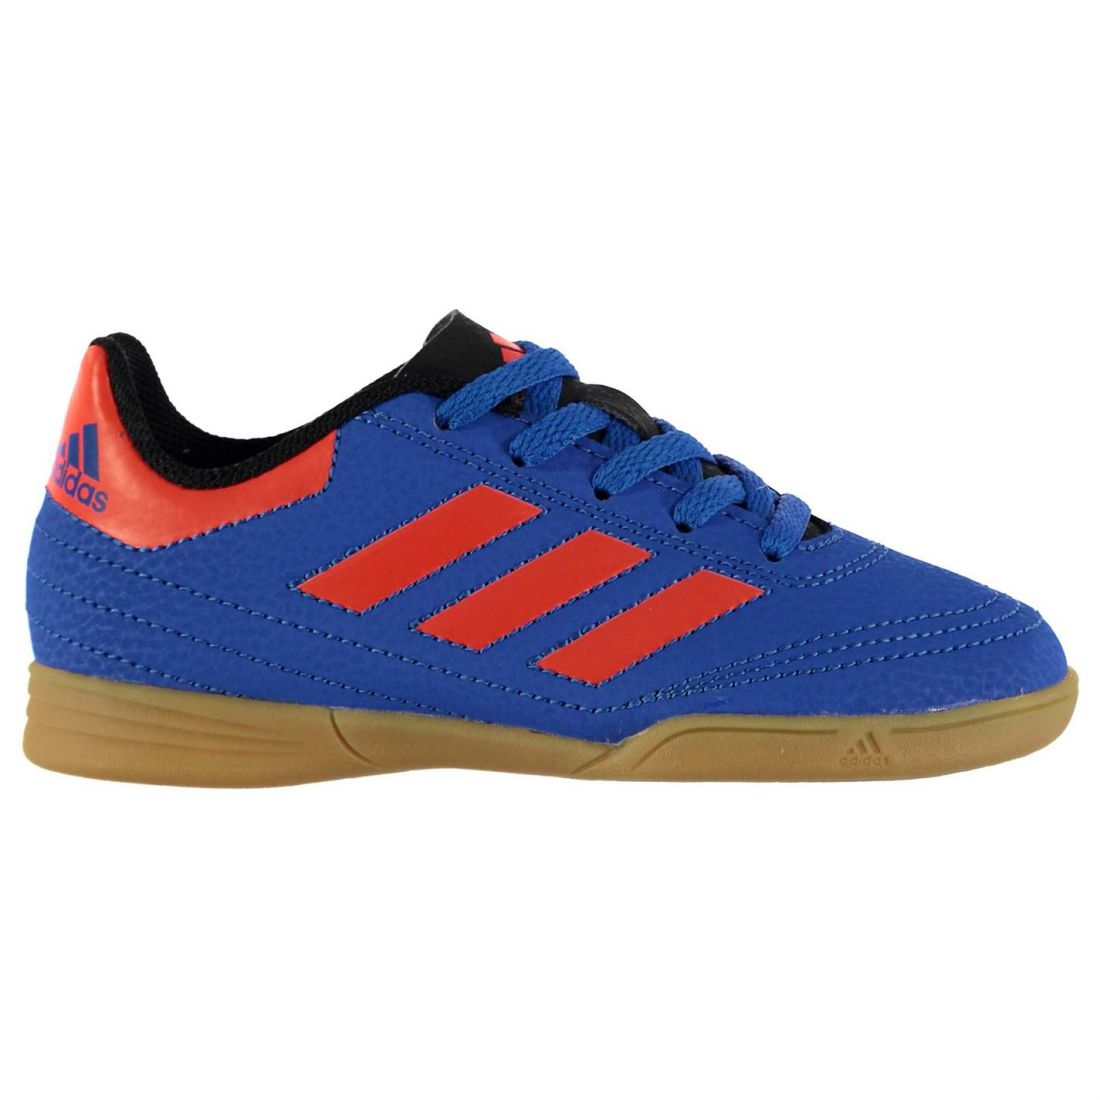 Details about adidas Kids Goletto Indoor Court Trainers Lace Up Football Sports Shoes